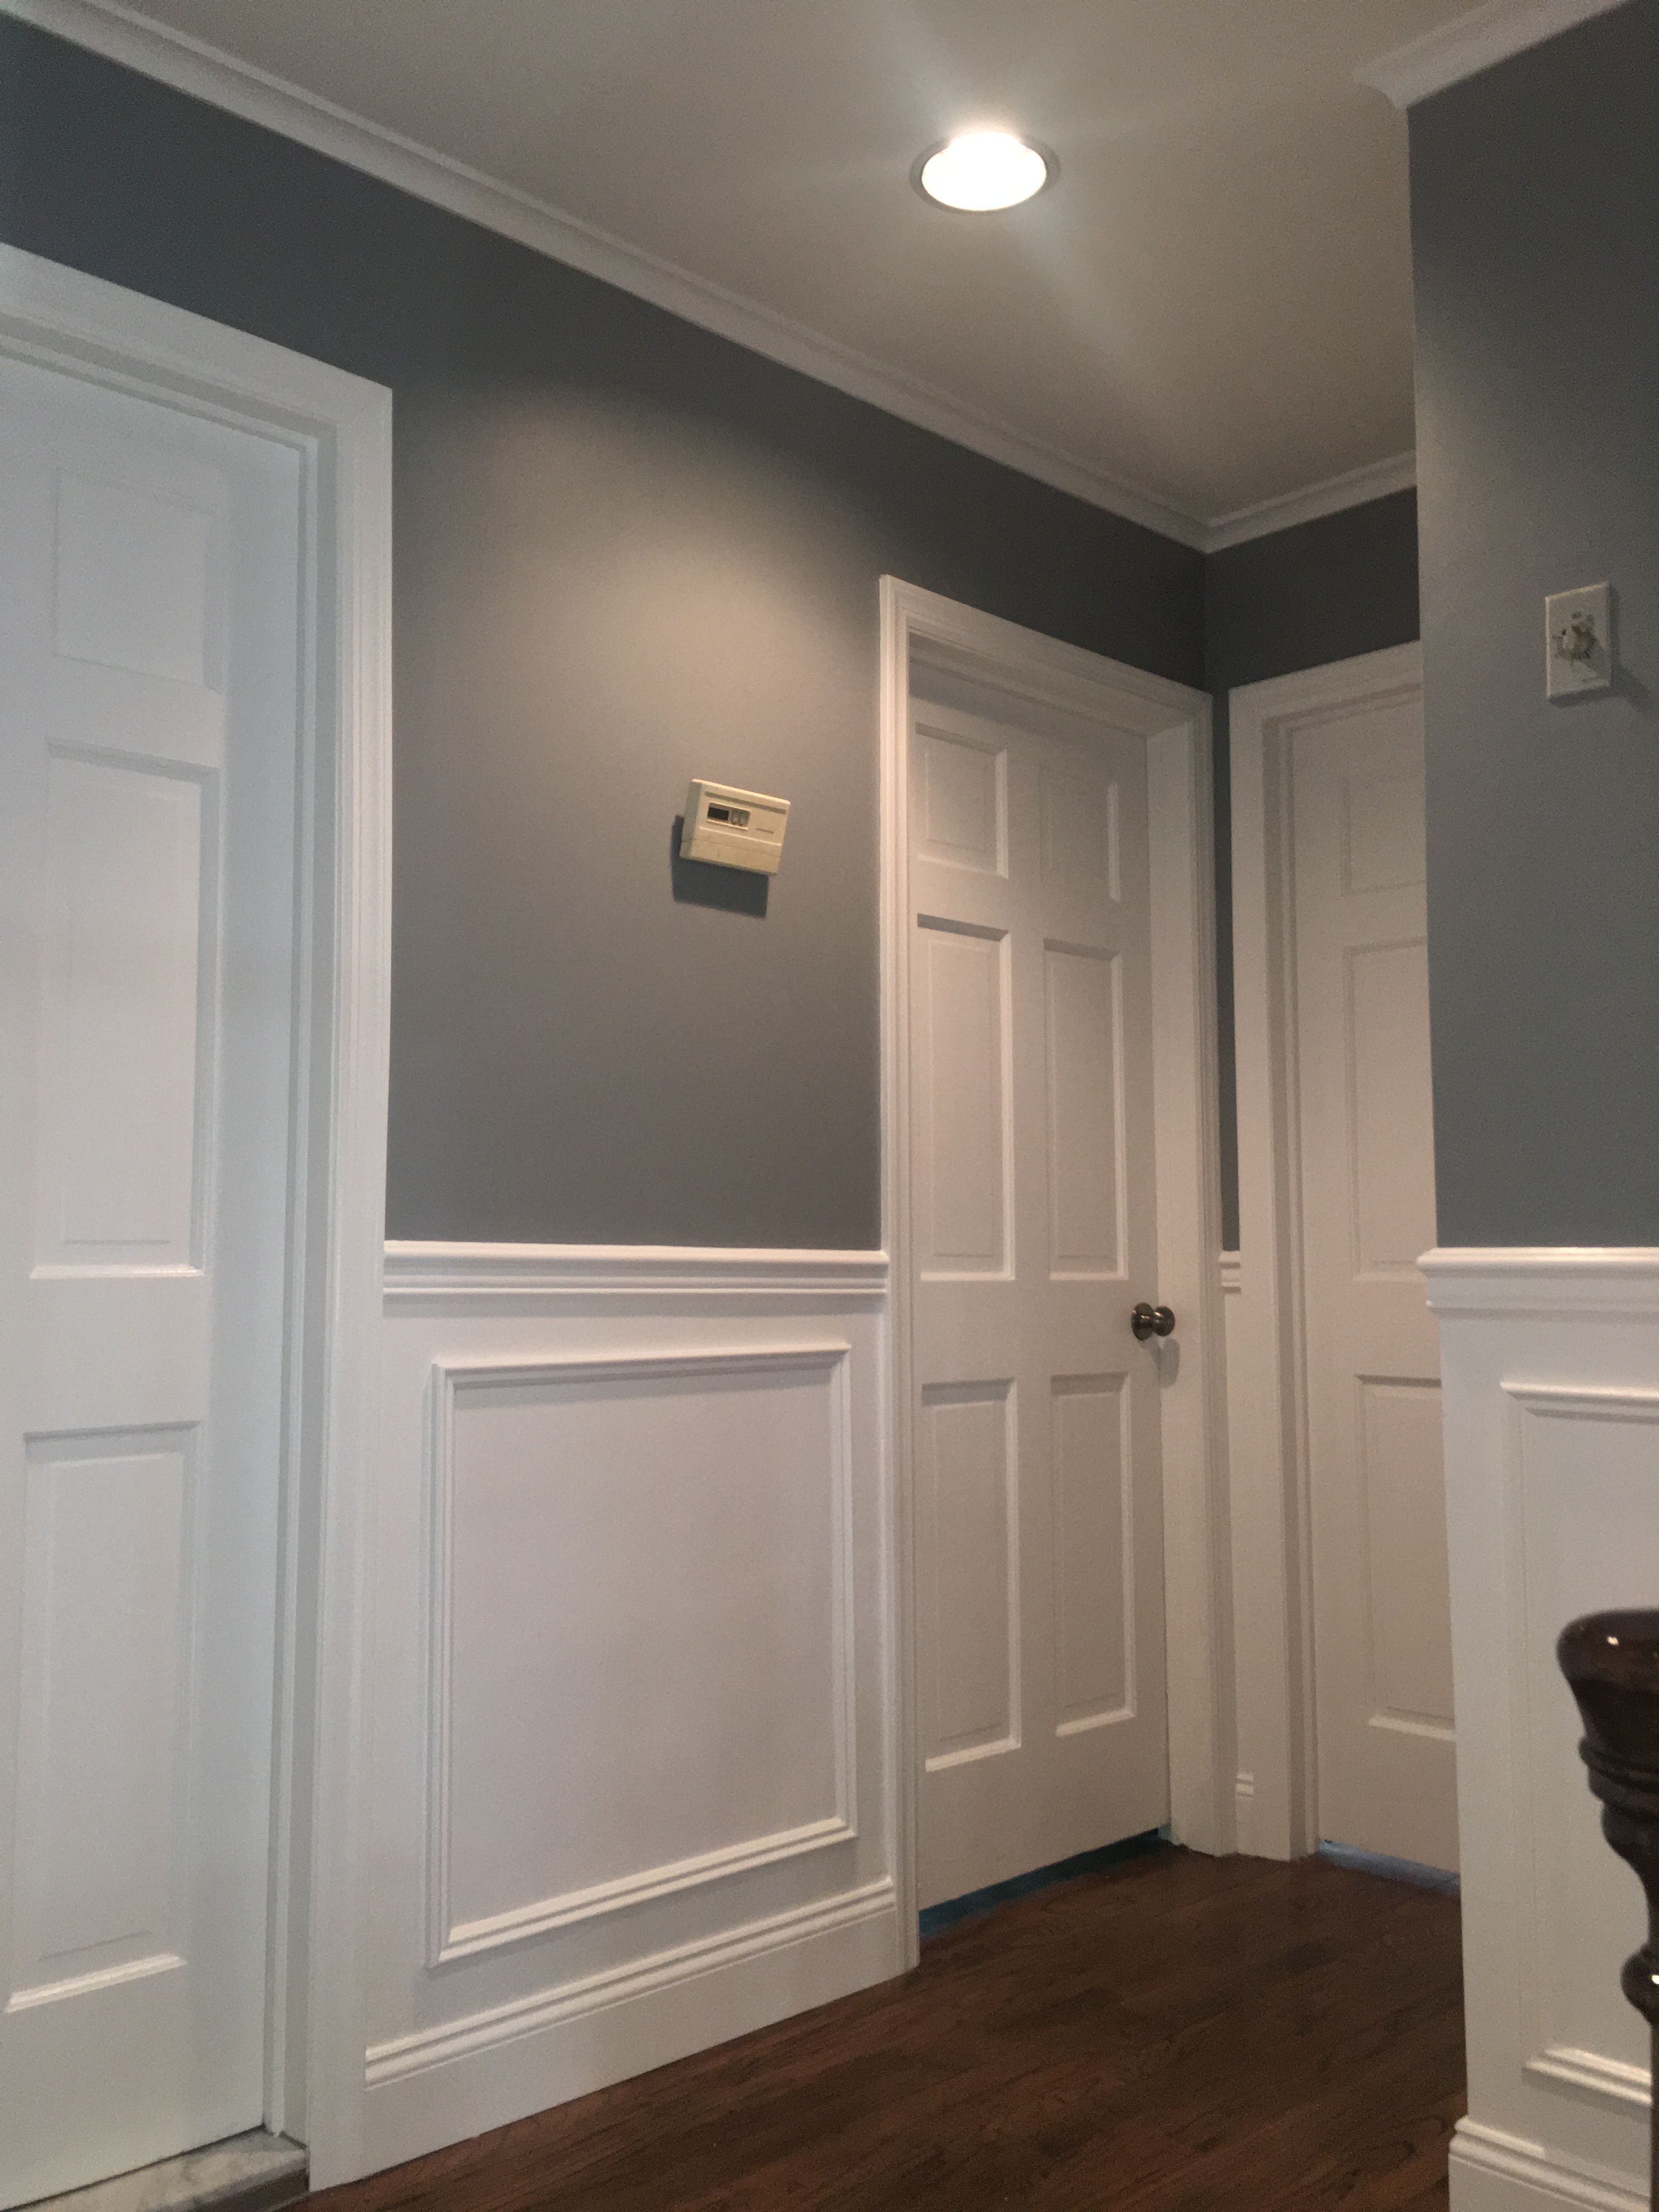 A Fresh New Coat Of 2121 30 Pewter Regal Select Eggshell For This Beautiful Home Great Job Done By Our Team Ceiling White Trim White Flats Beautiful Homes